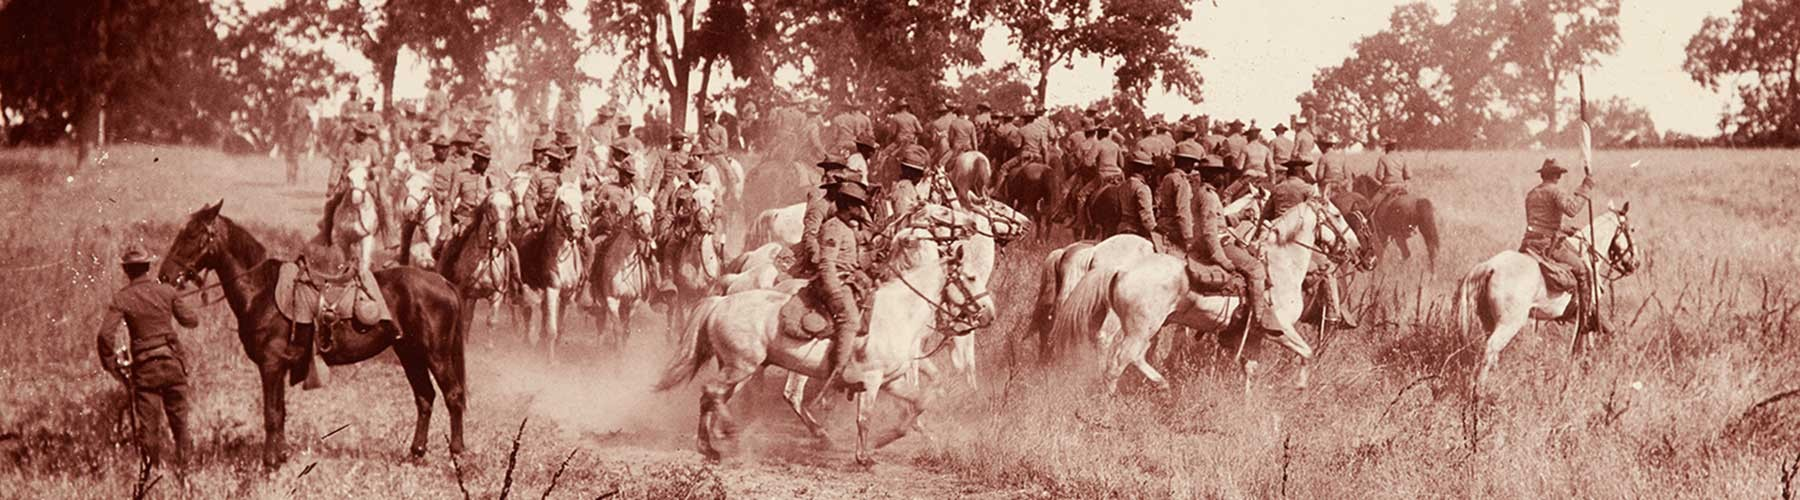 b/w photo of 9th Cavalry buffalo soldiers on horses